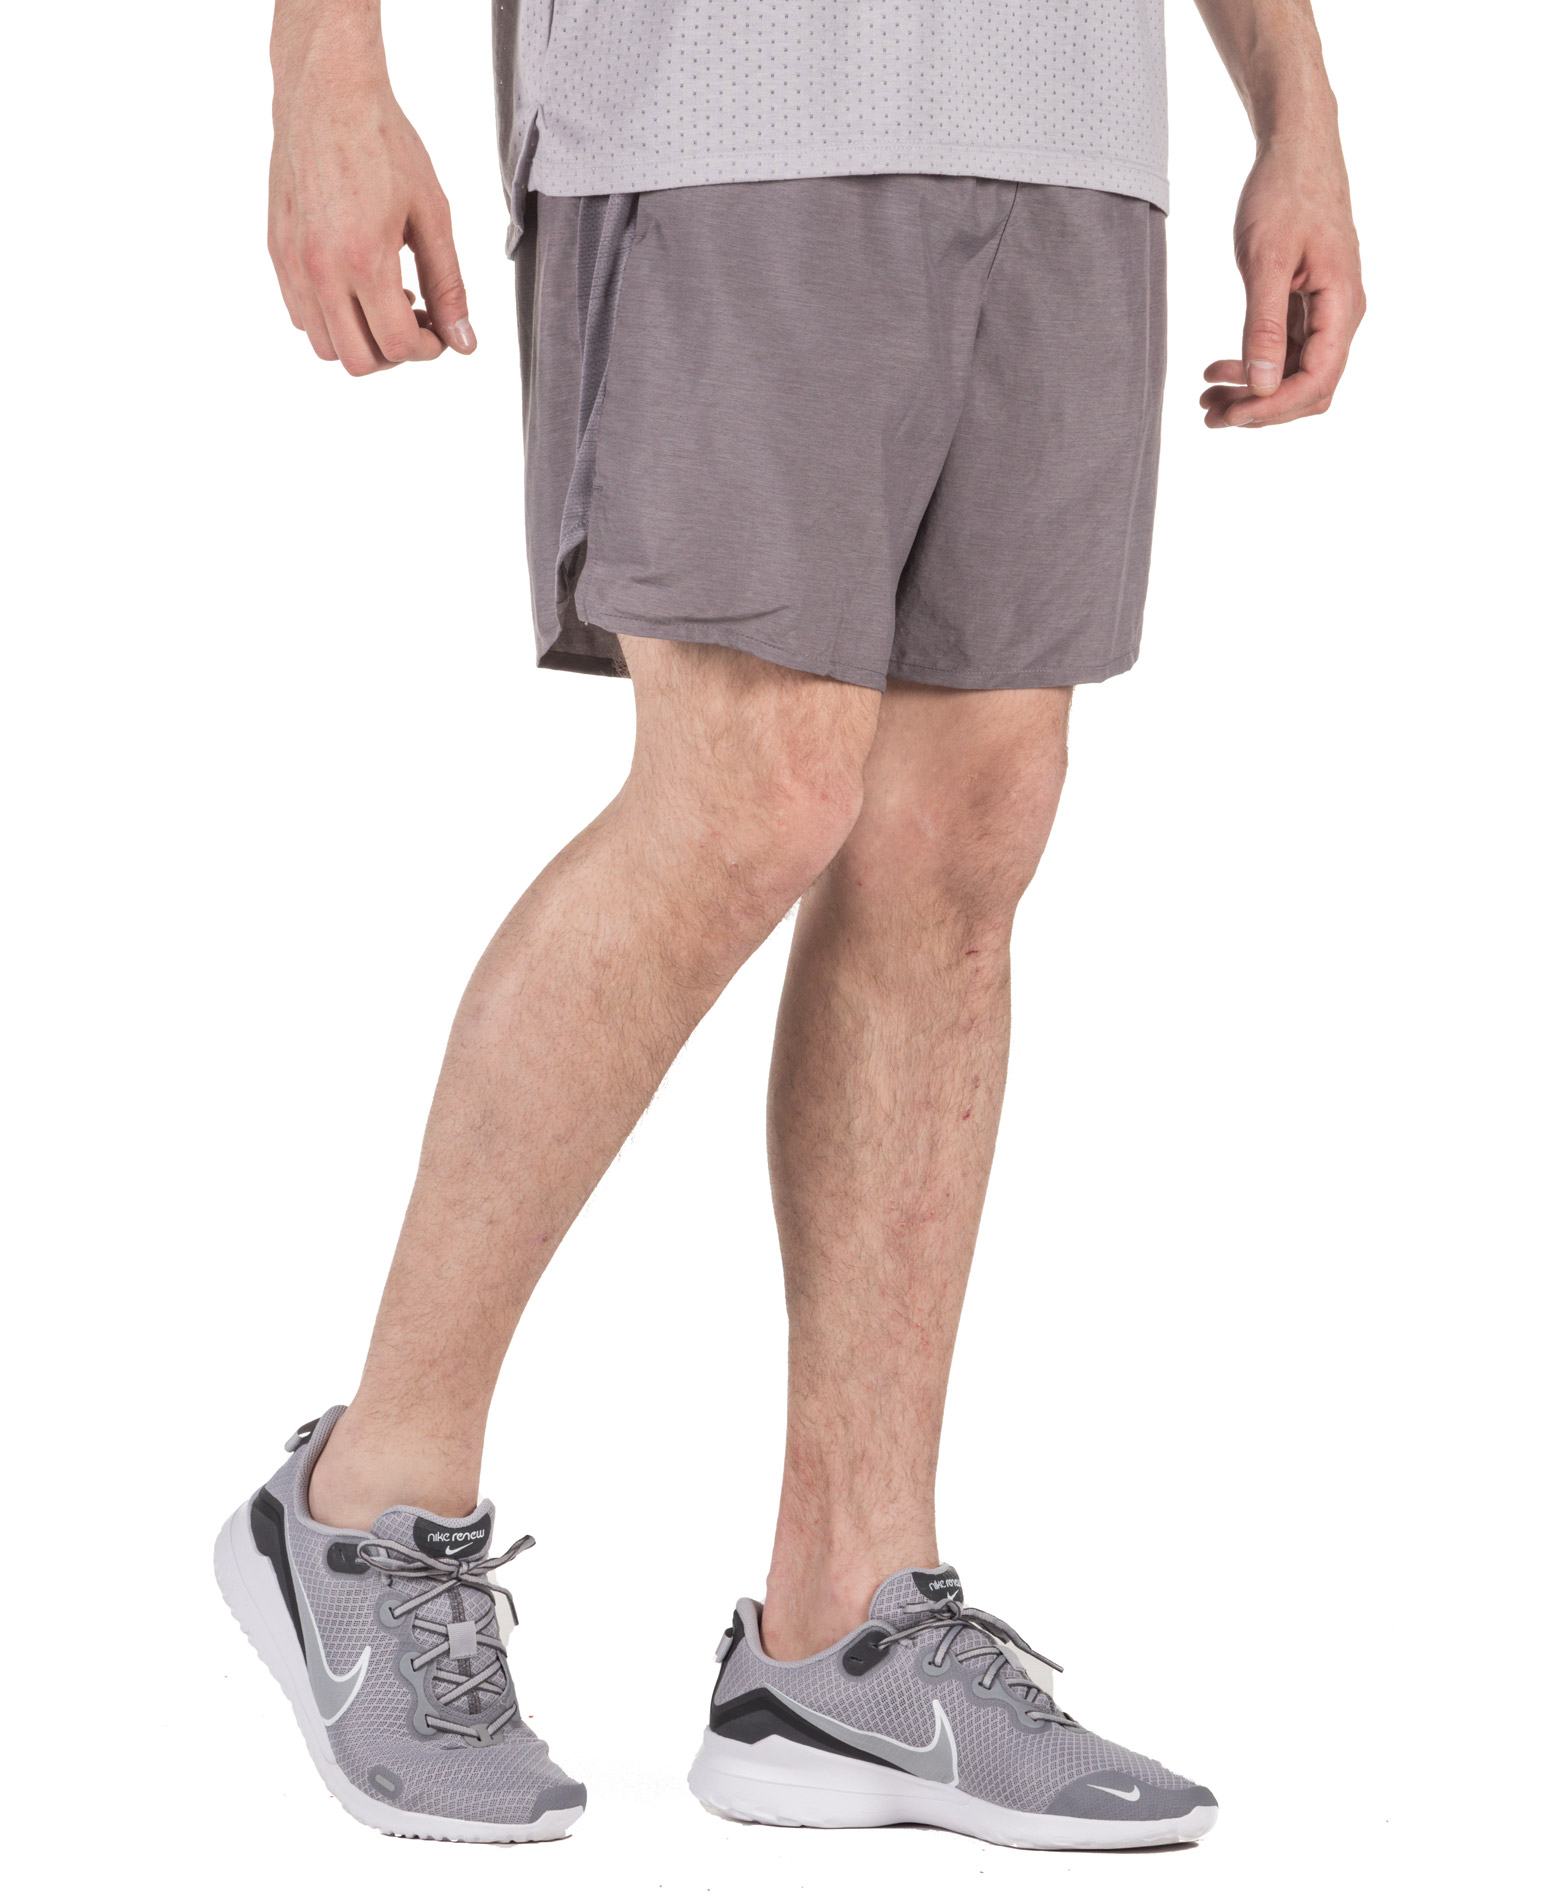 NIKE M NK CHLLGR SHORT 7IN 2IN1 AJ7741-056 Ανθρακί